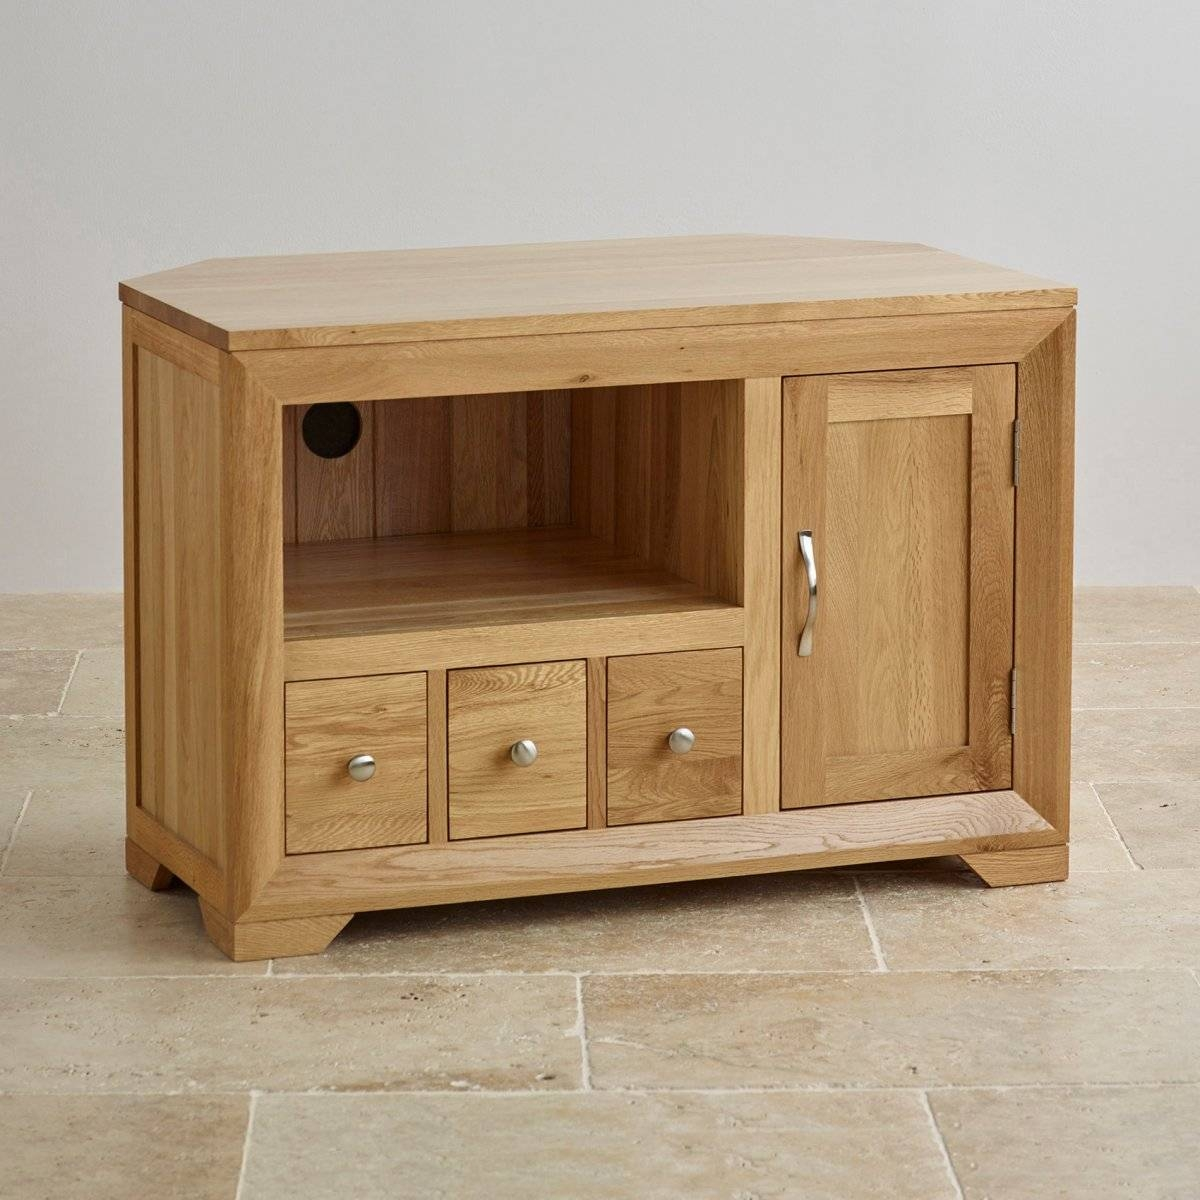 Bevel Small Corner Tv Cabinet In Solid Oak | Oak Furniture Land within Corner Wooden Tv Cabinets (Image 1 of 15)